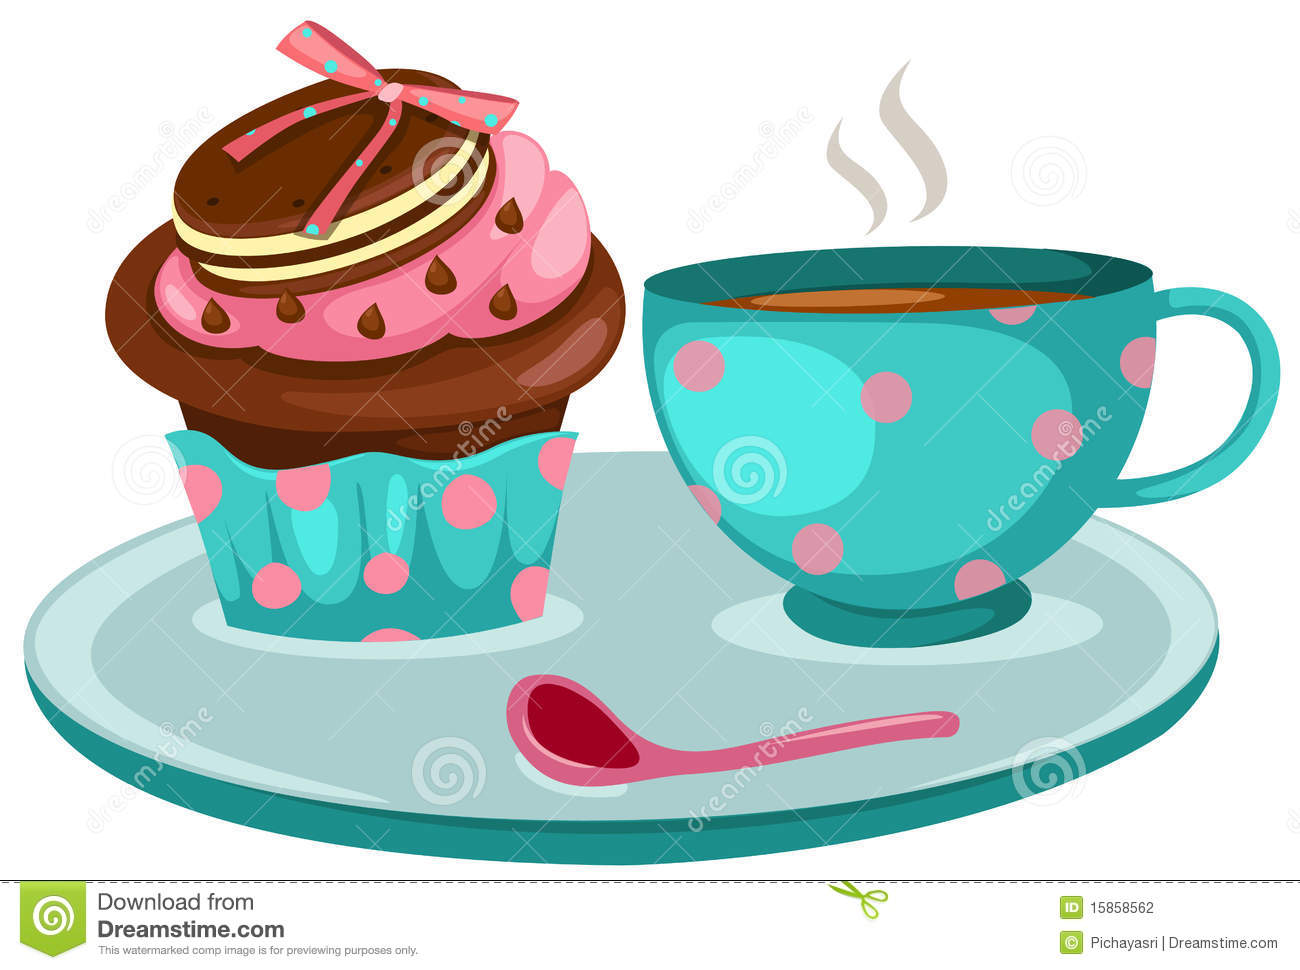 Teacup clipart coffee morning Cup collection Cute And clip